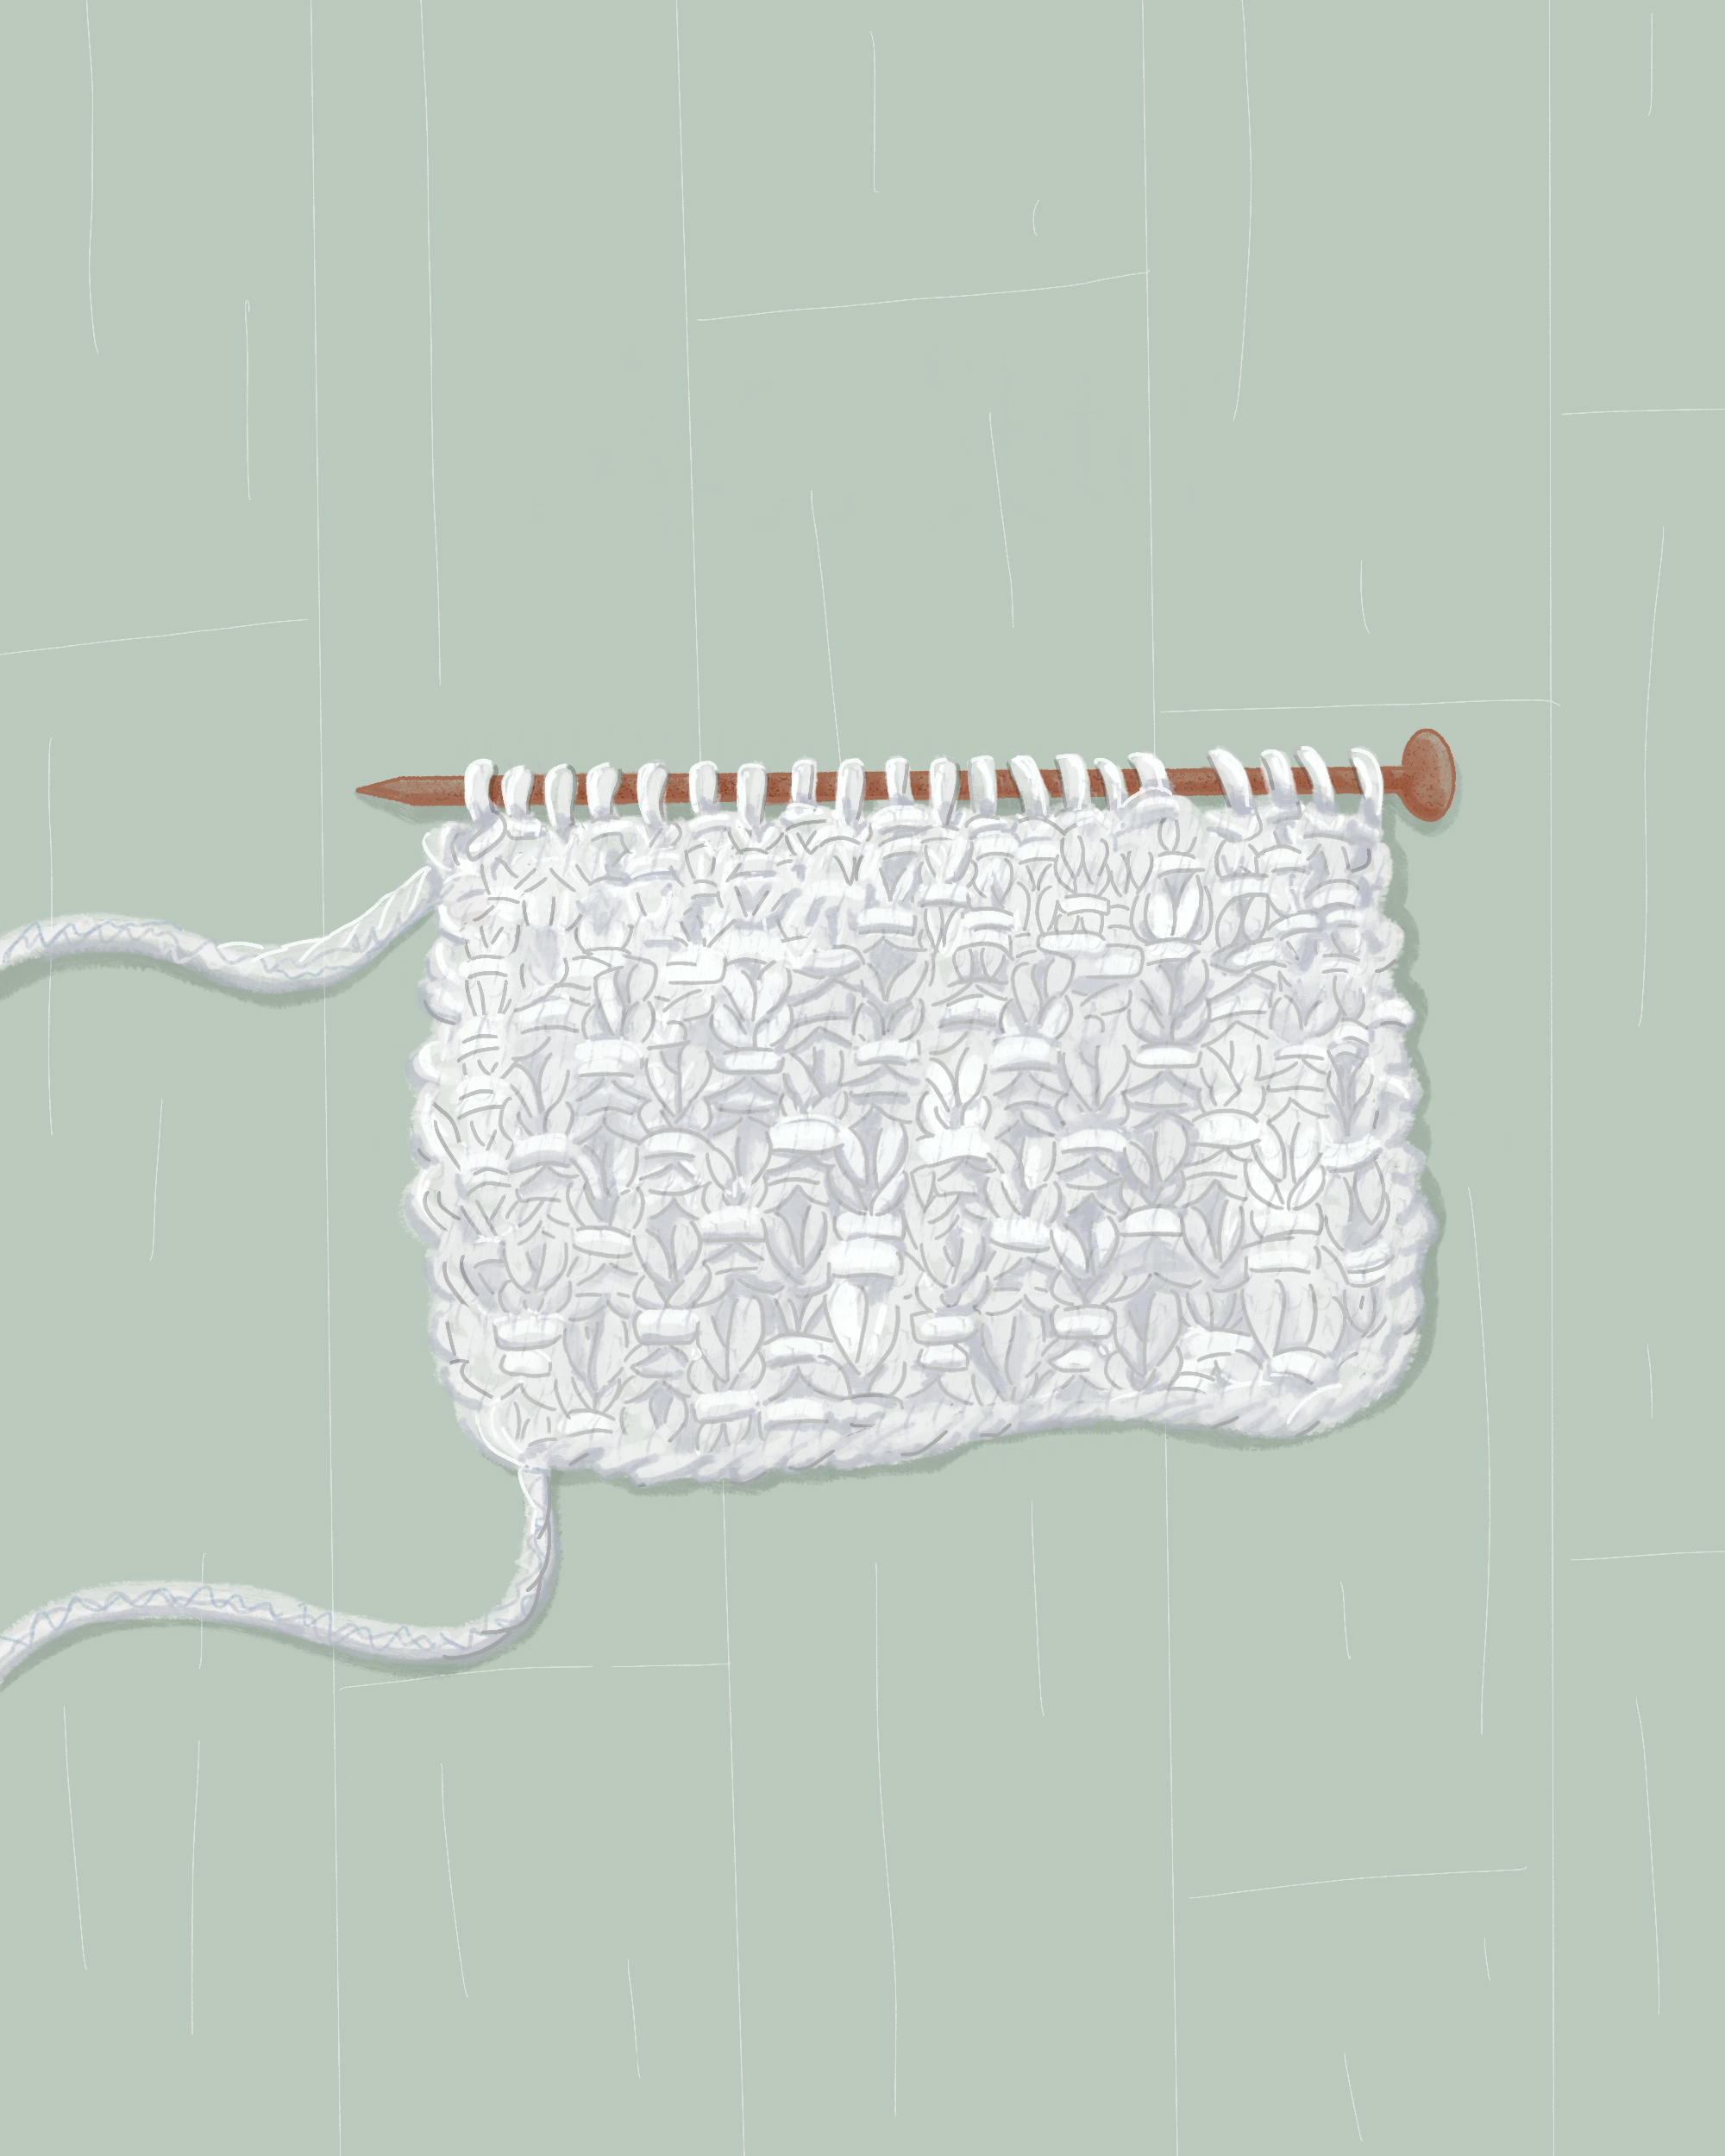 The Moss Stitch: What Is It and How Do I Knit It?